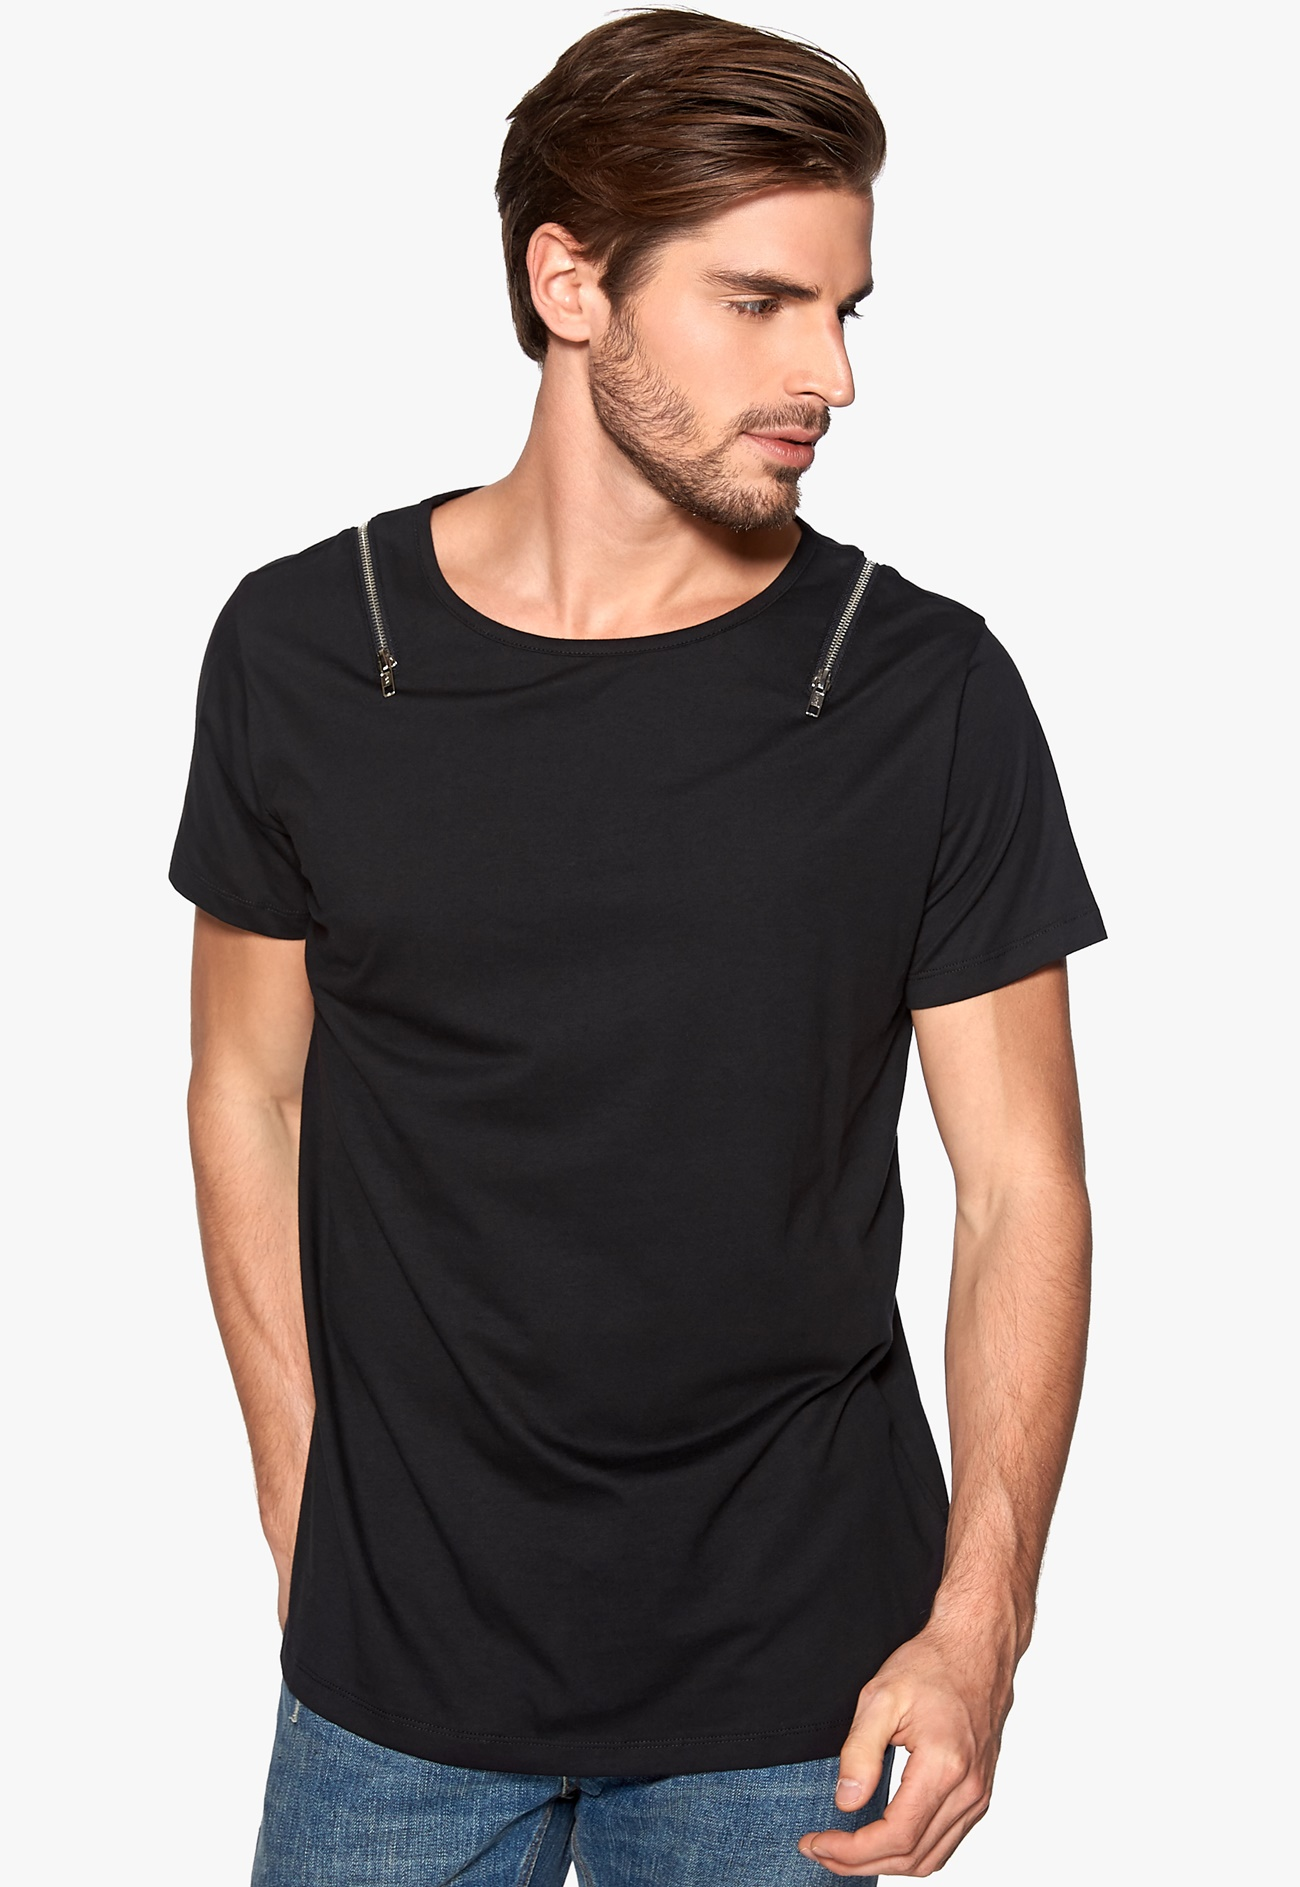 D brand love t shirt black bubbleroom for Love notes brand shirt